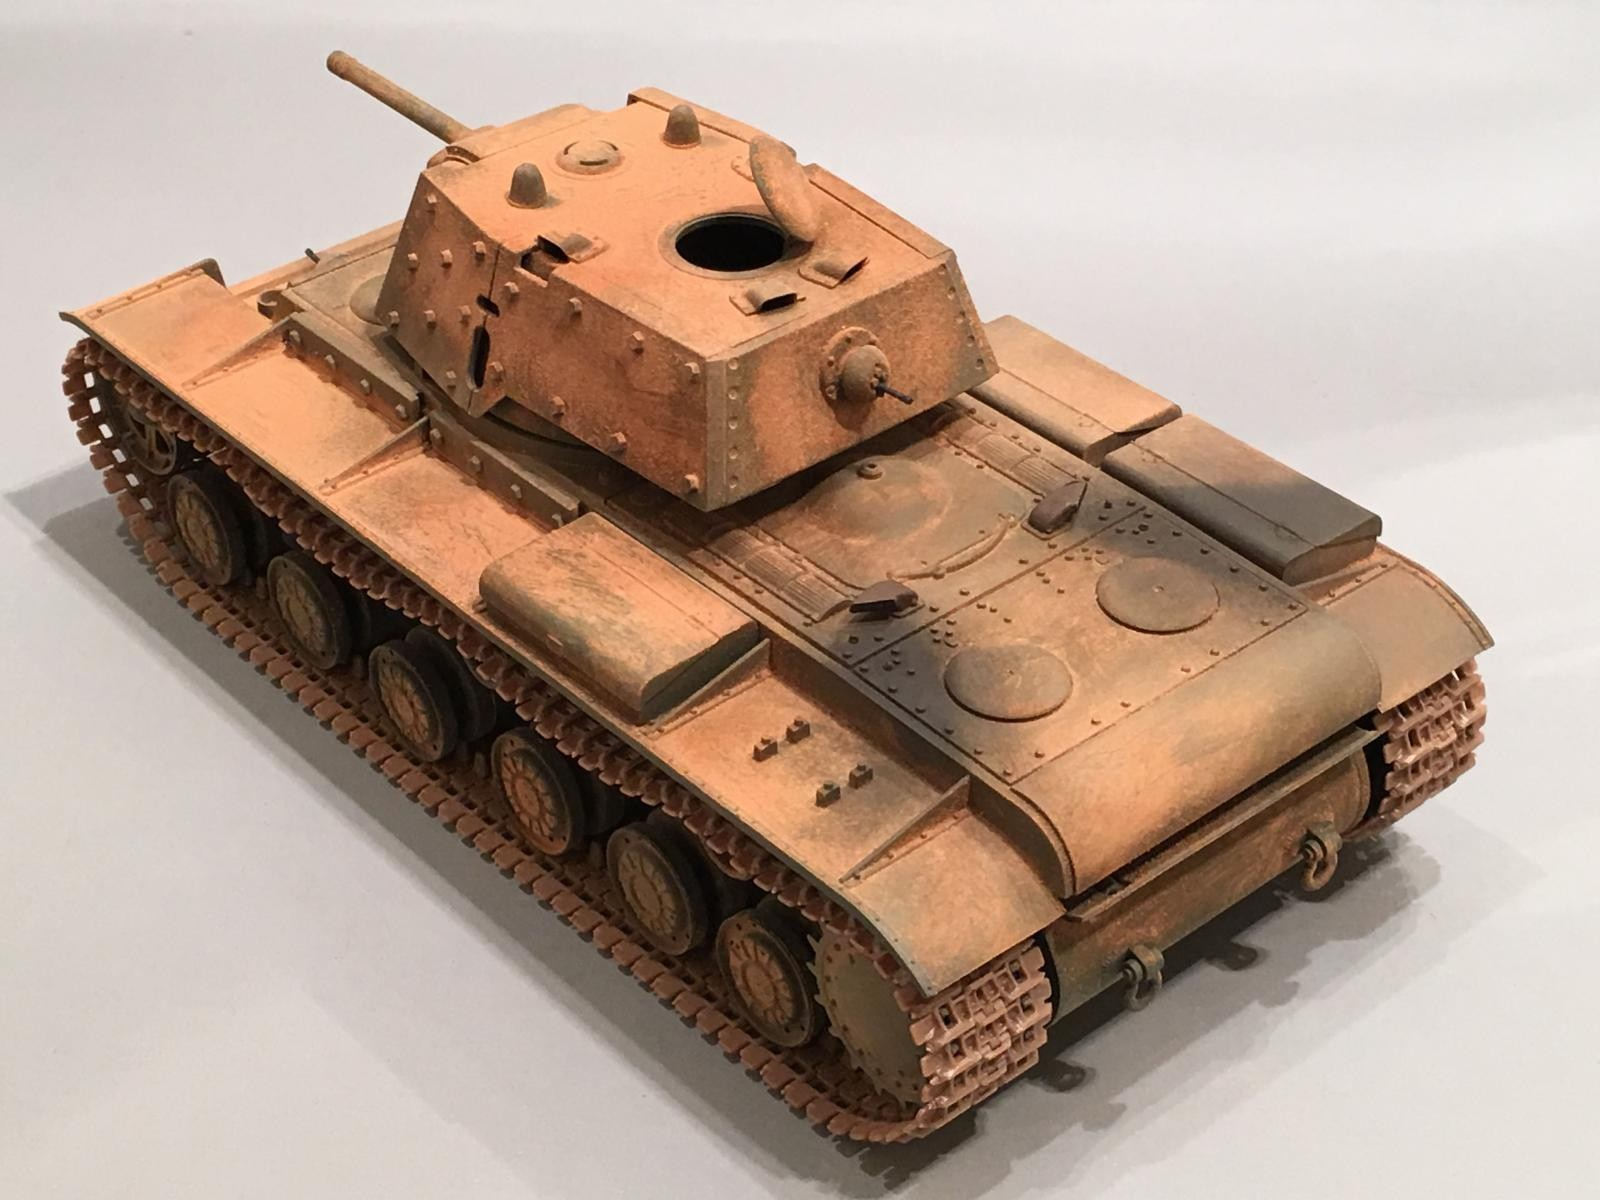 1/35 Tamiya KV-1 Russian tank with Bolt on Armor | iModeler